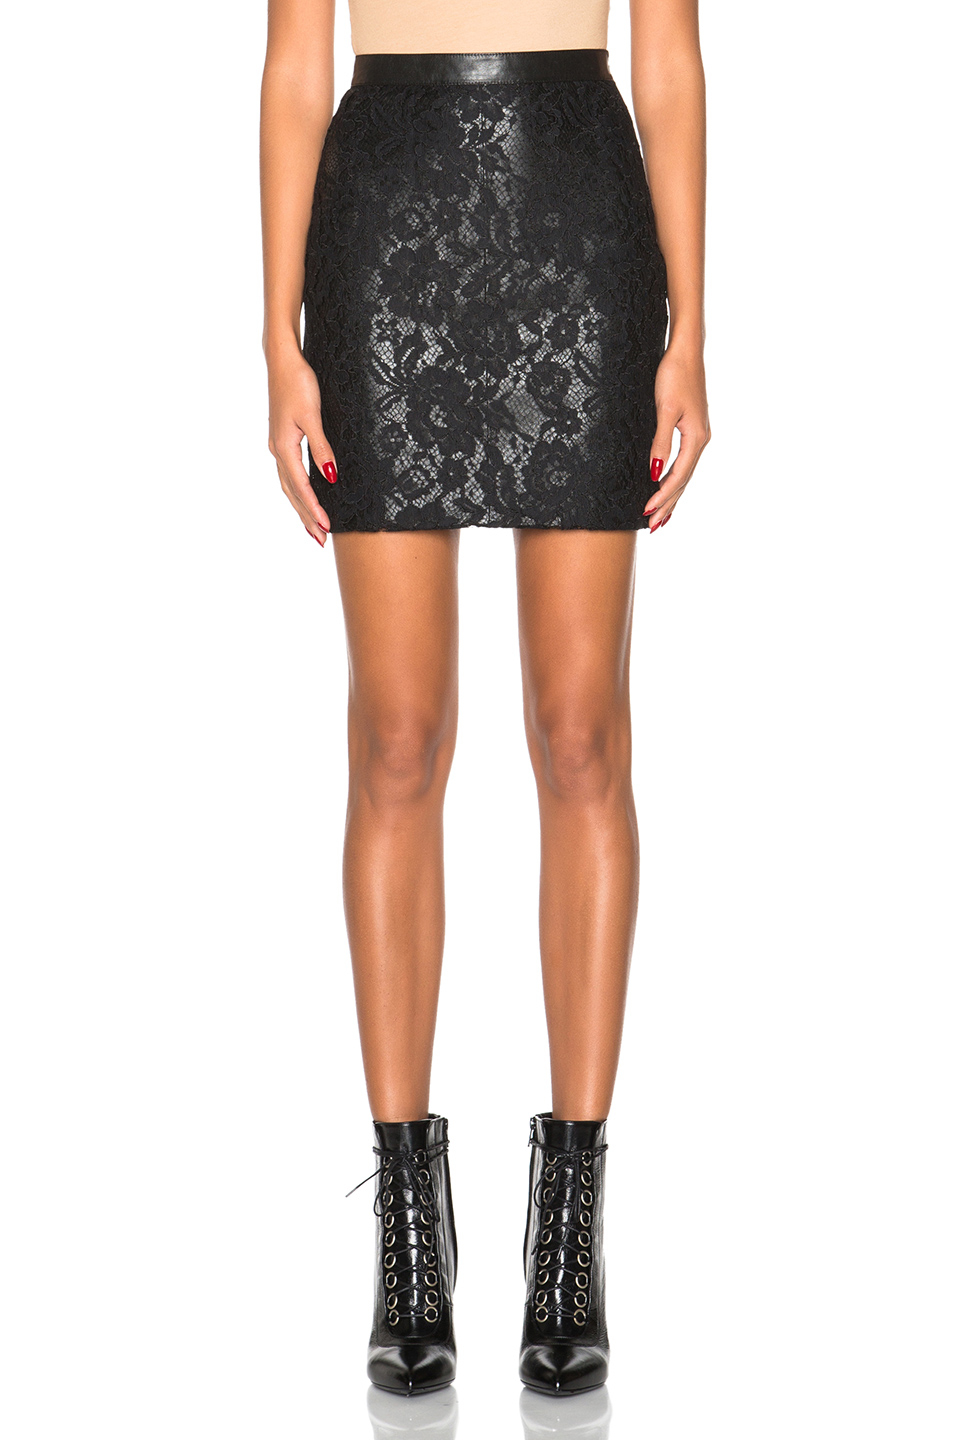 Saint laurent Leather And Lace Skirt in Black | Lyst